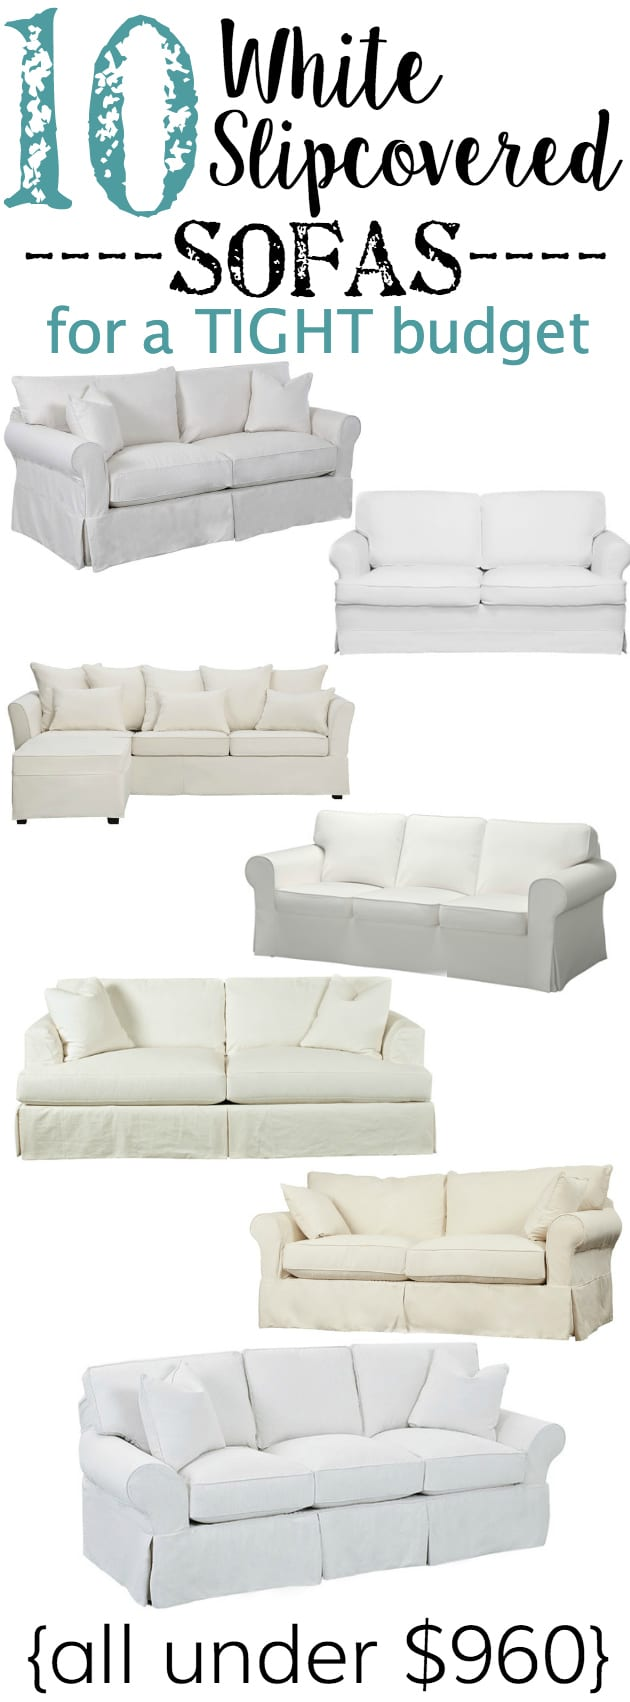 Couch Arm Covers How To Make 10 White Slipcovered Sofas On A Budget Bless Er House